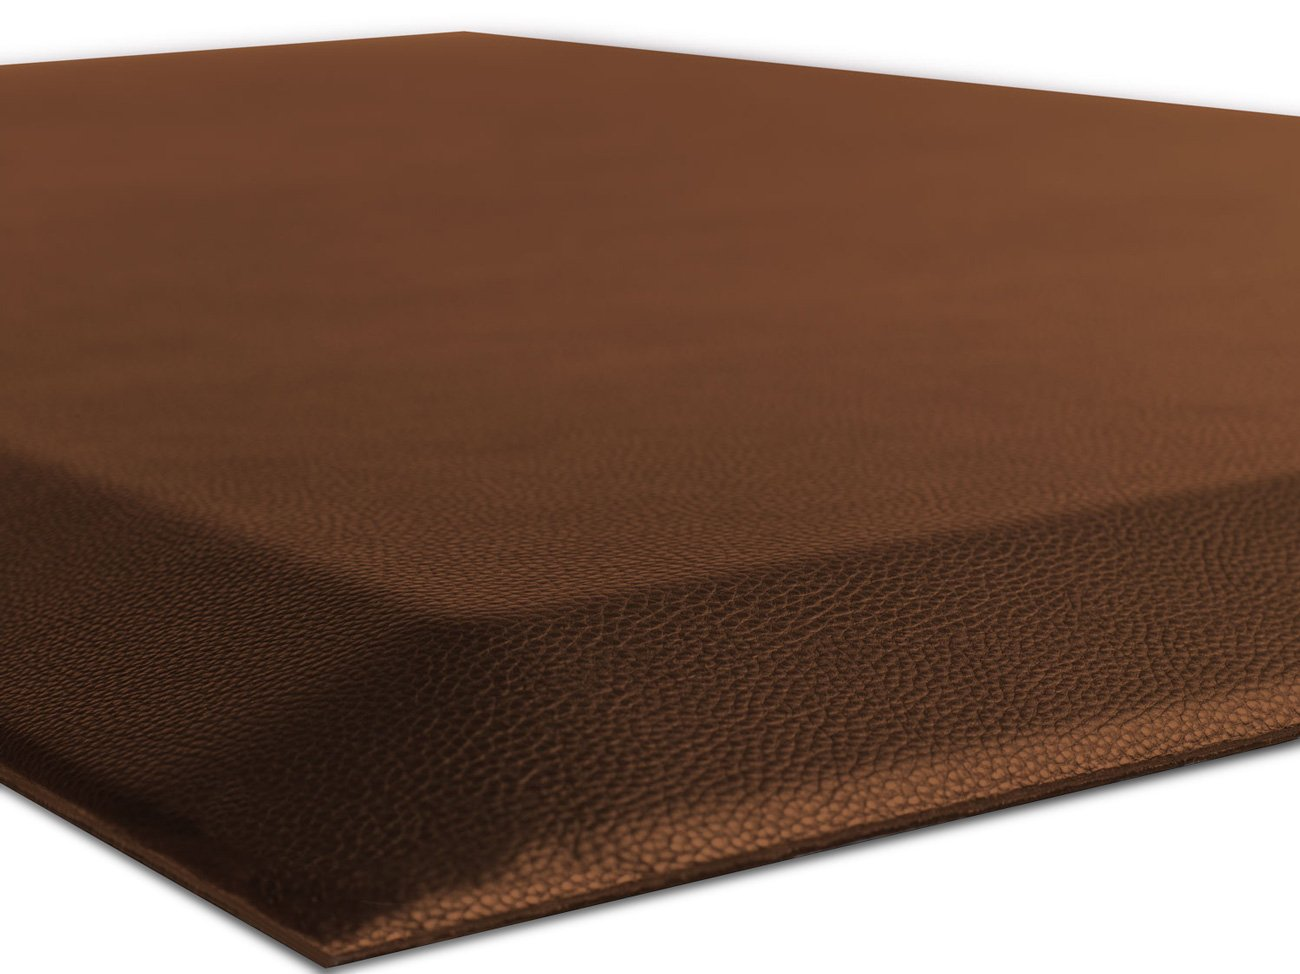 The Original 3/4'' GORILLA GRIP (R) Premium Anti-Fatigue Comfort Mat, Perfect for Kitchen and Office Standing Desk, Ergonomically Engineered, 6 Colors and 3 Sizes, Non-Toxic, 70x24 inches (Brown) by Gorilla Grip